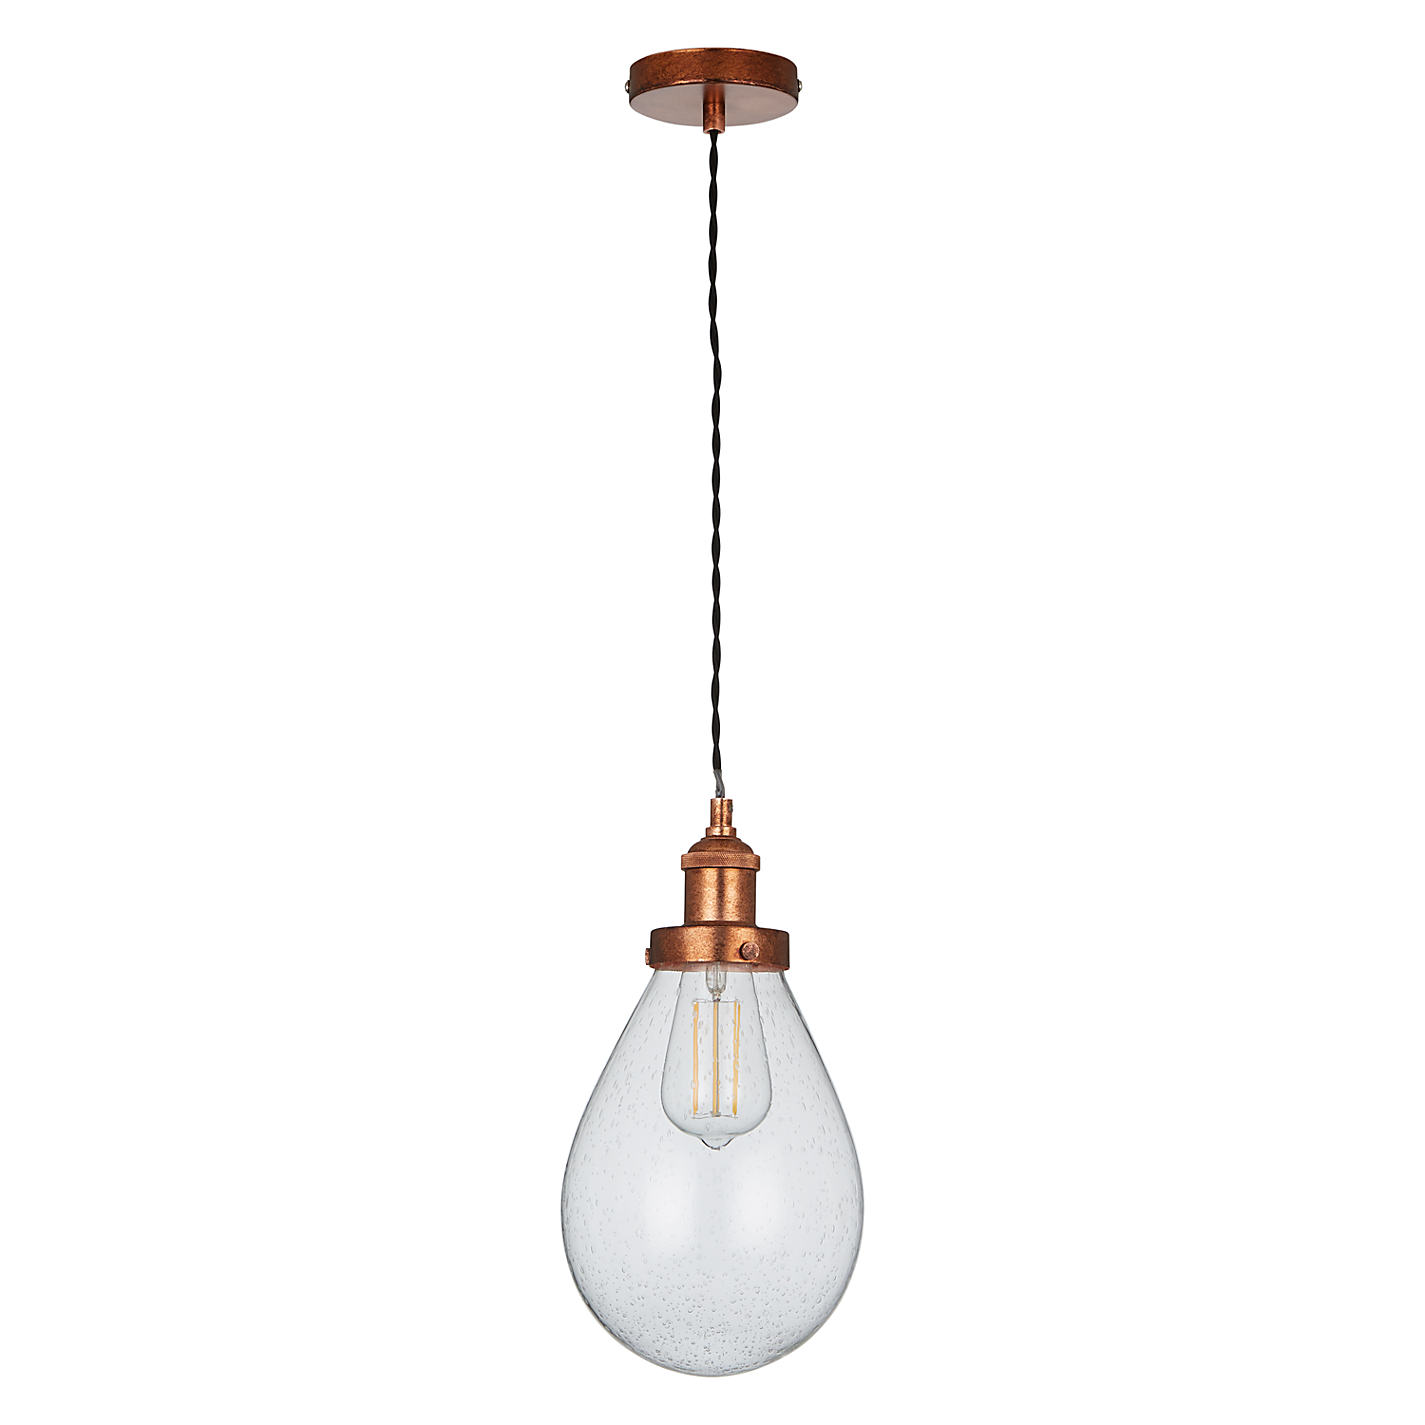 Buy john lewis radley glass bistro pendant ceiling light clear buy john lewis radley glass bistro pendant ceiling light clearcopper online at johnlewis aloadofball Gallery